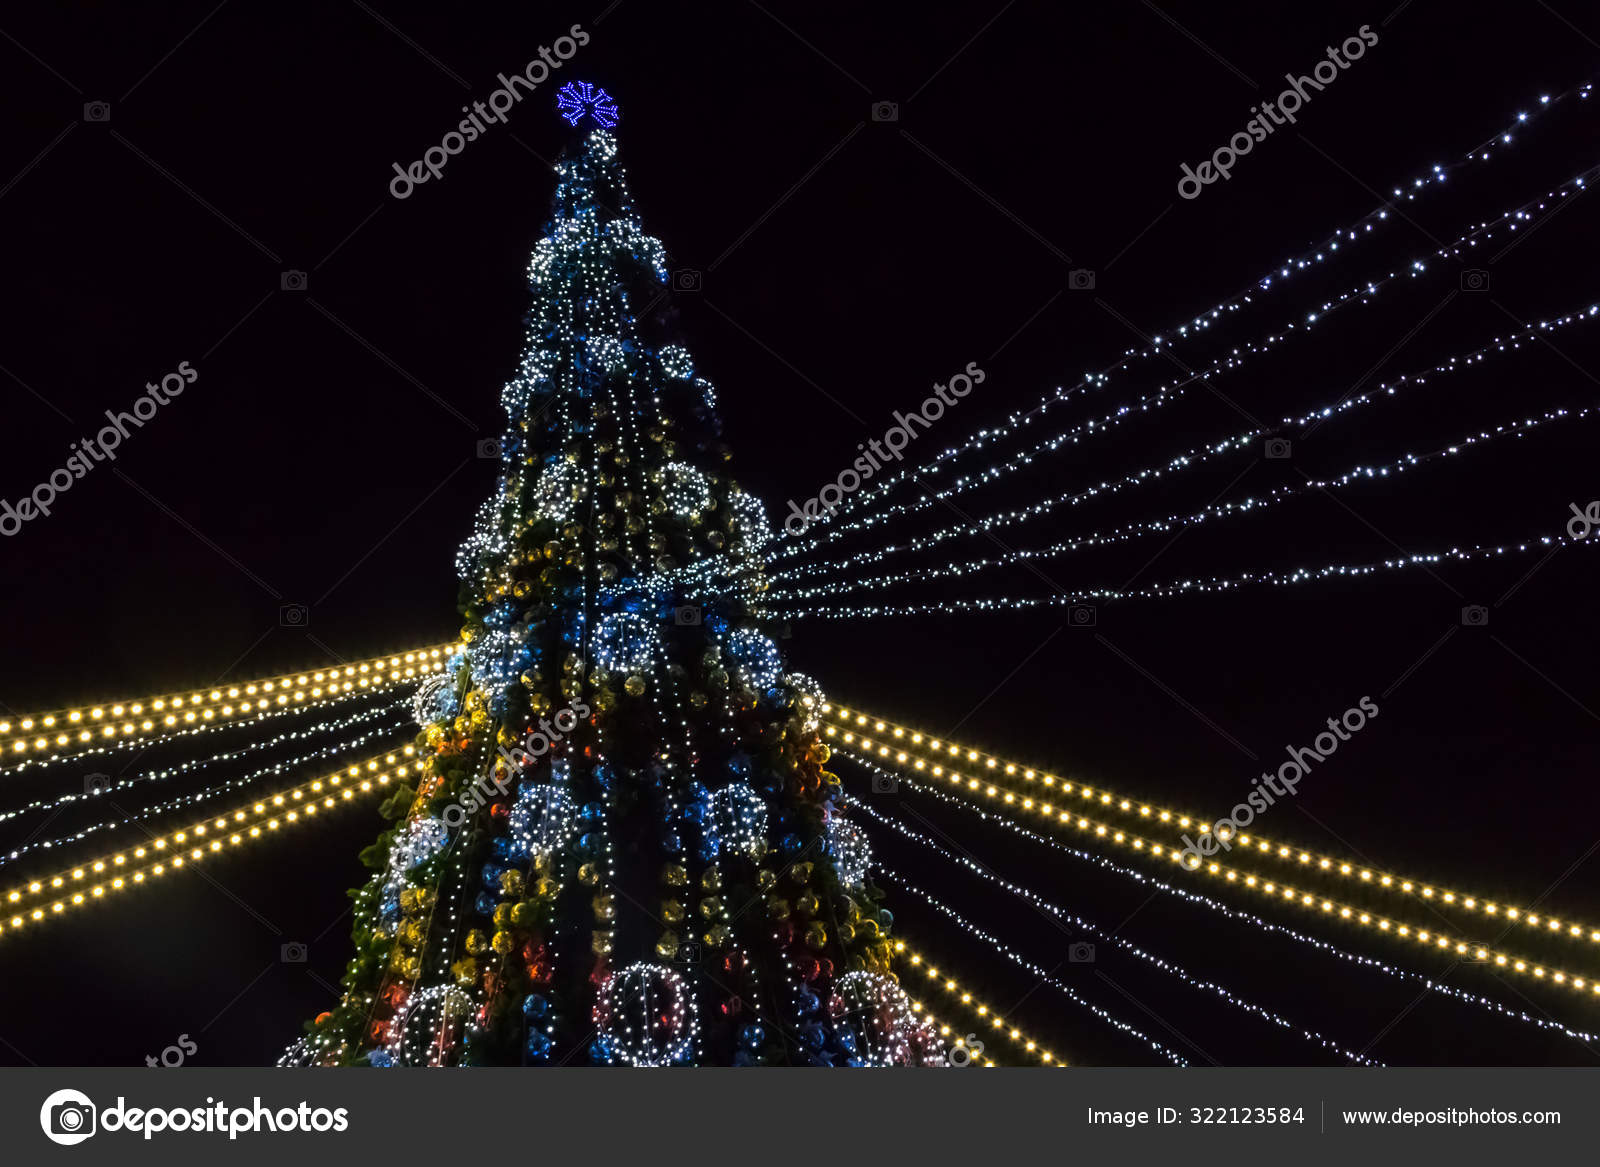 Decorated Christmas Tree With Multi Colored Lights At Night Stock Photo C Olyasolodenko 322123584